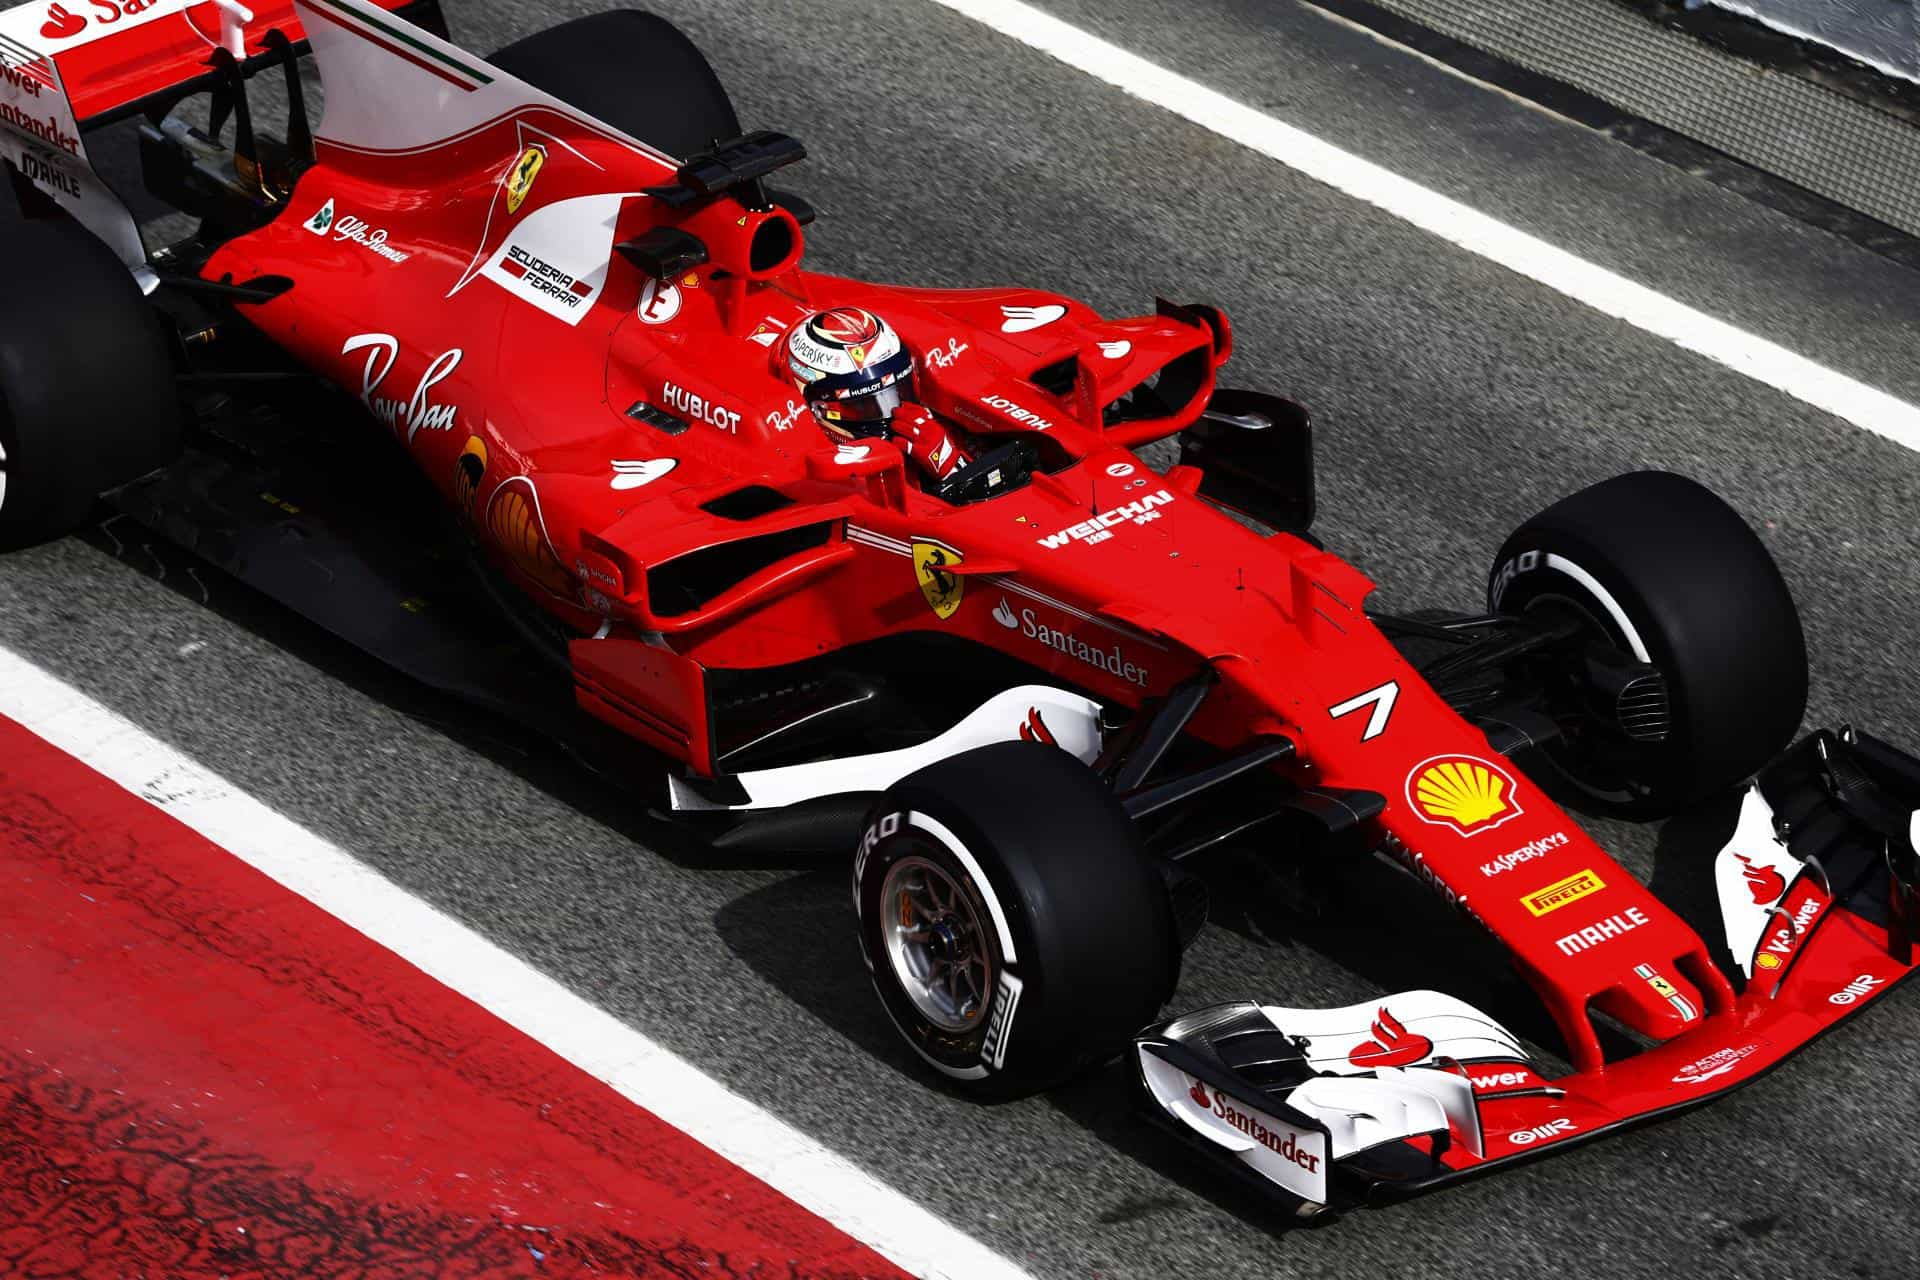 raikkonen barcelona f1 2017 test ferrari sf70h pitlane foto ferrari max f1. Black Bedroom Furniture Sets. Home Design Ideas